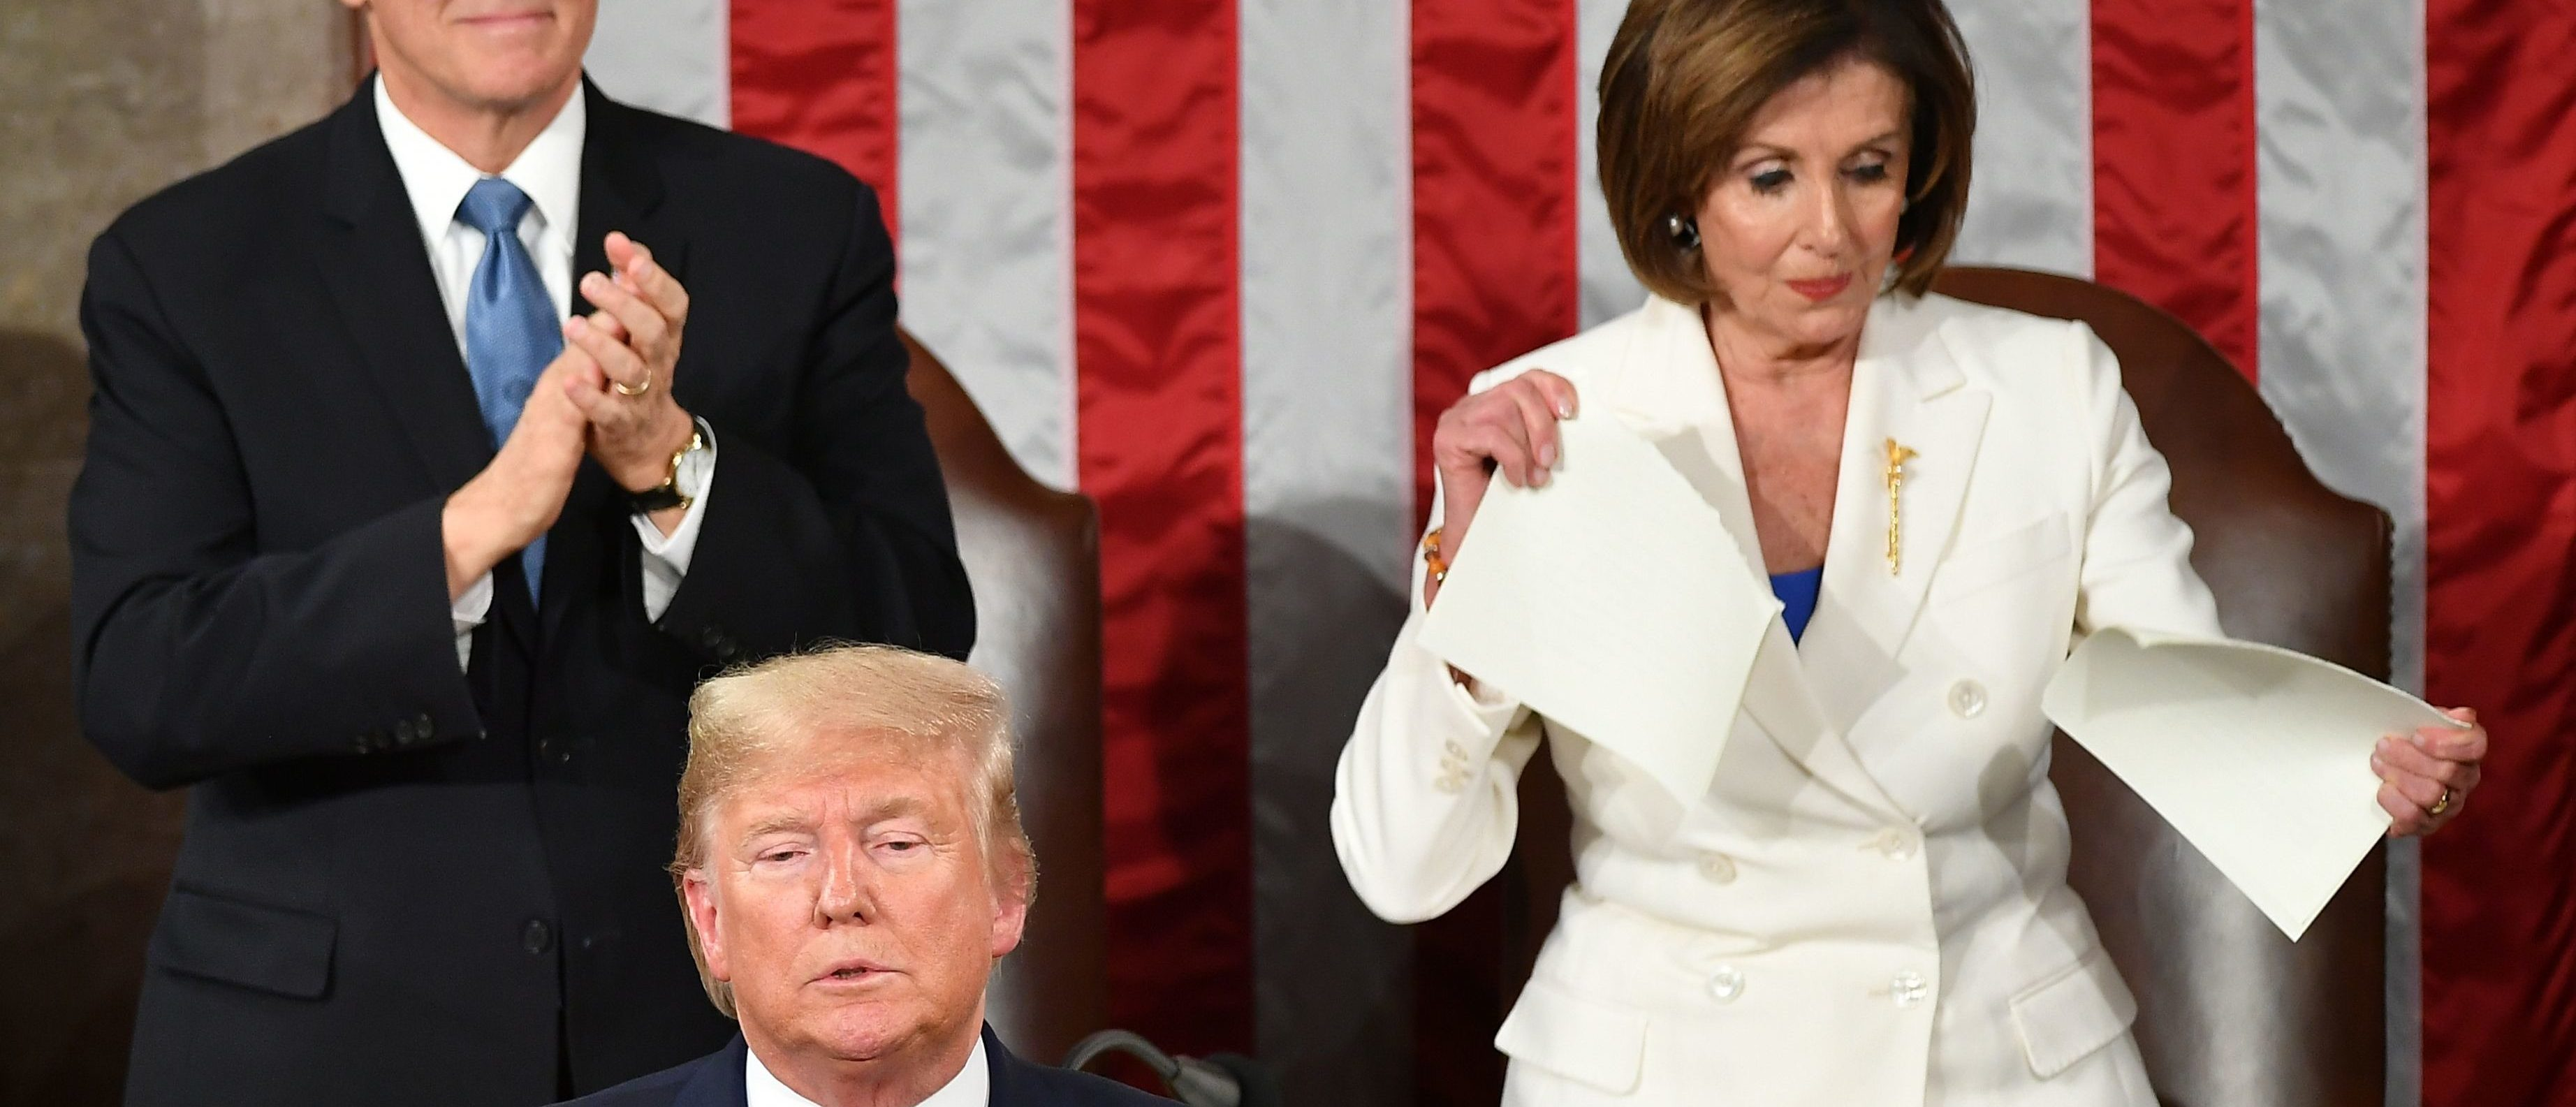 US Vice President Mike Pence claps as Speaker of the US House of Representatives Nancy Pelosi appears to rip a copy of US President Donald Trumps speech after he delivers the State of the Union address at the US Capitol in Washington, DC, on February 4, 2020. (Photo by MANDEL NGAN/AFP via Getty Images)